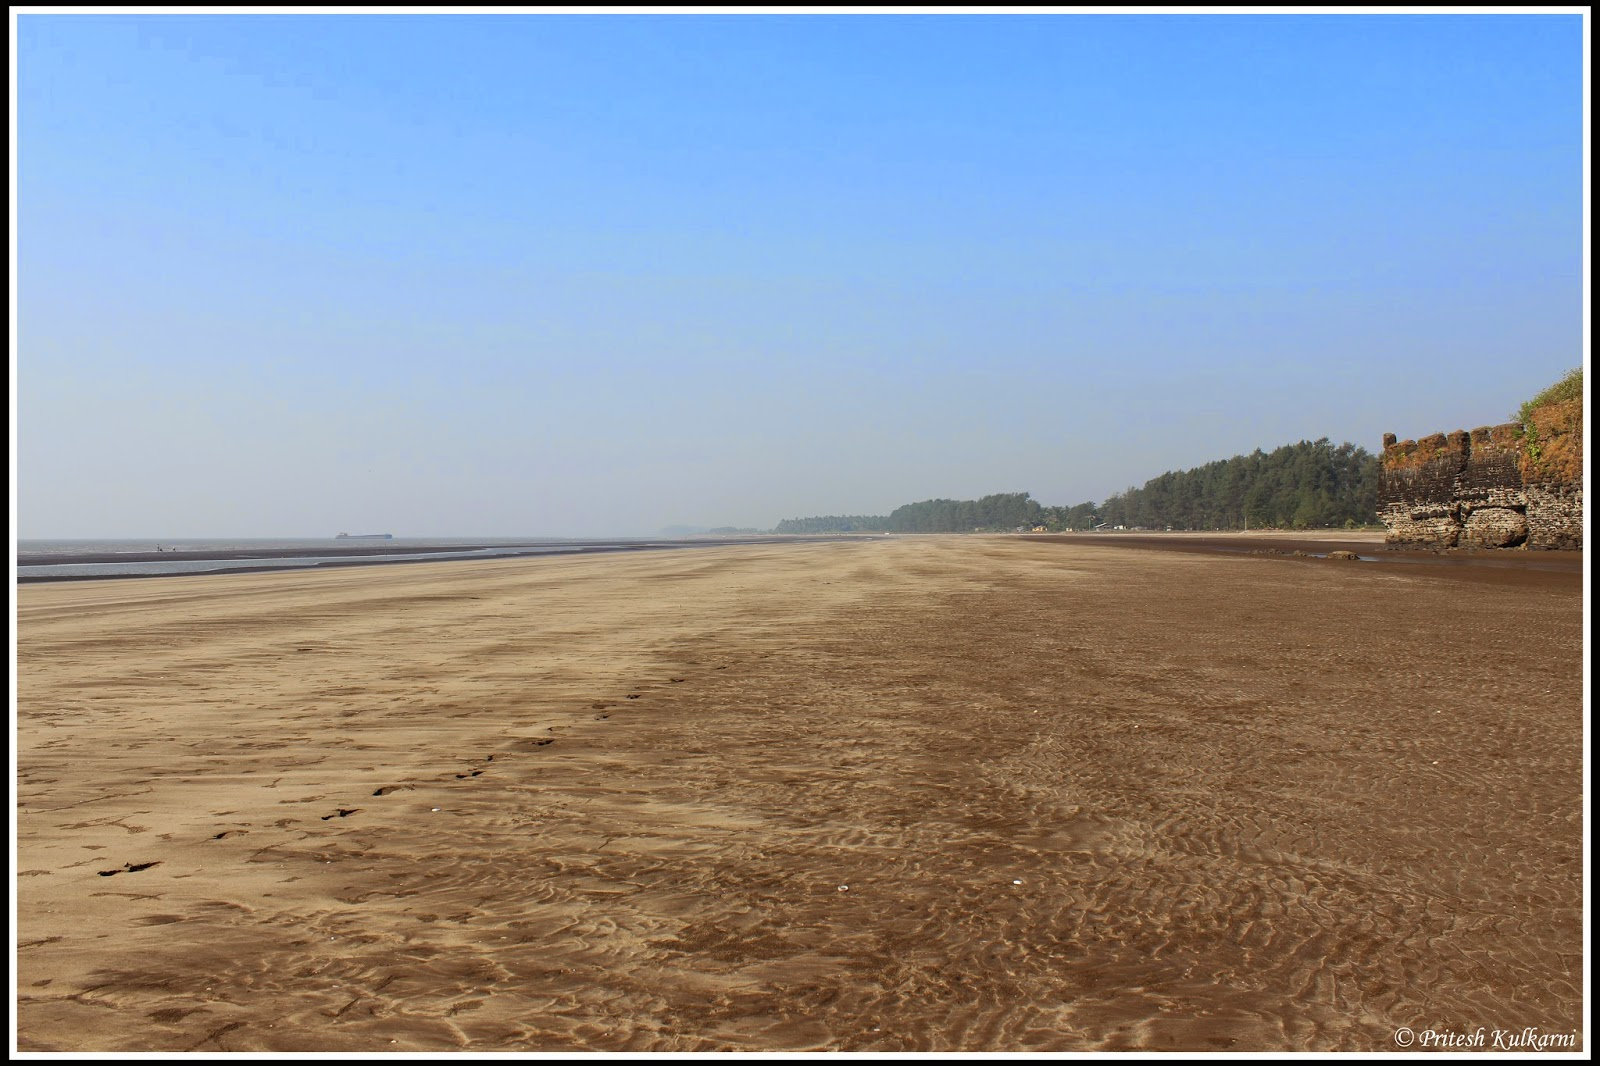 Revdanda beach